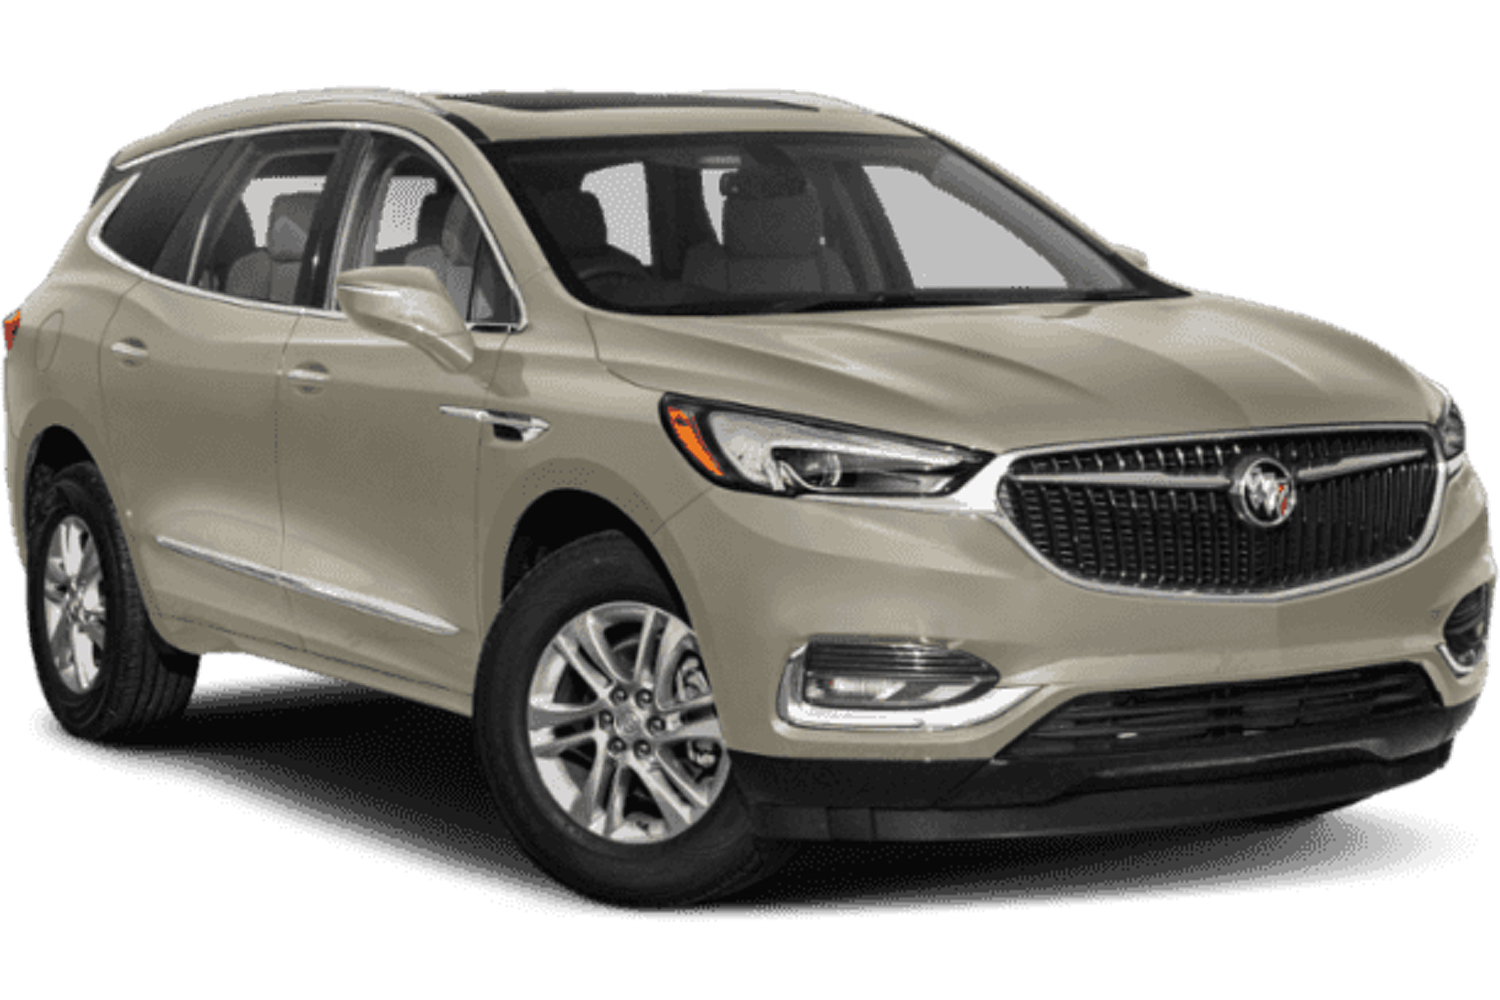 2020 Buick Enclave Gets New Champagne Gold Color | Gm Authority 2021 Buick Enclave New Colors, Oil Type, Options